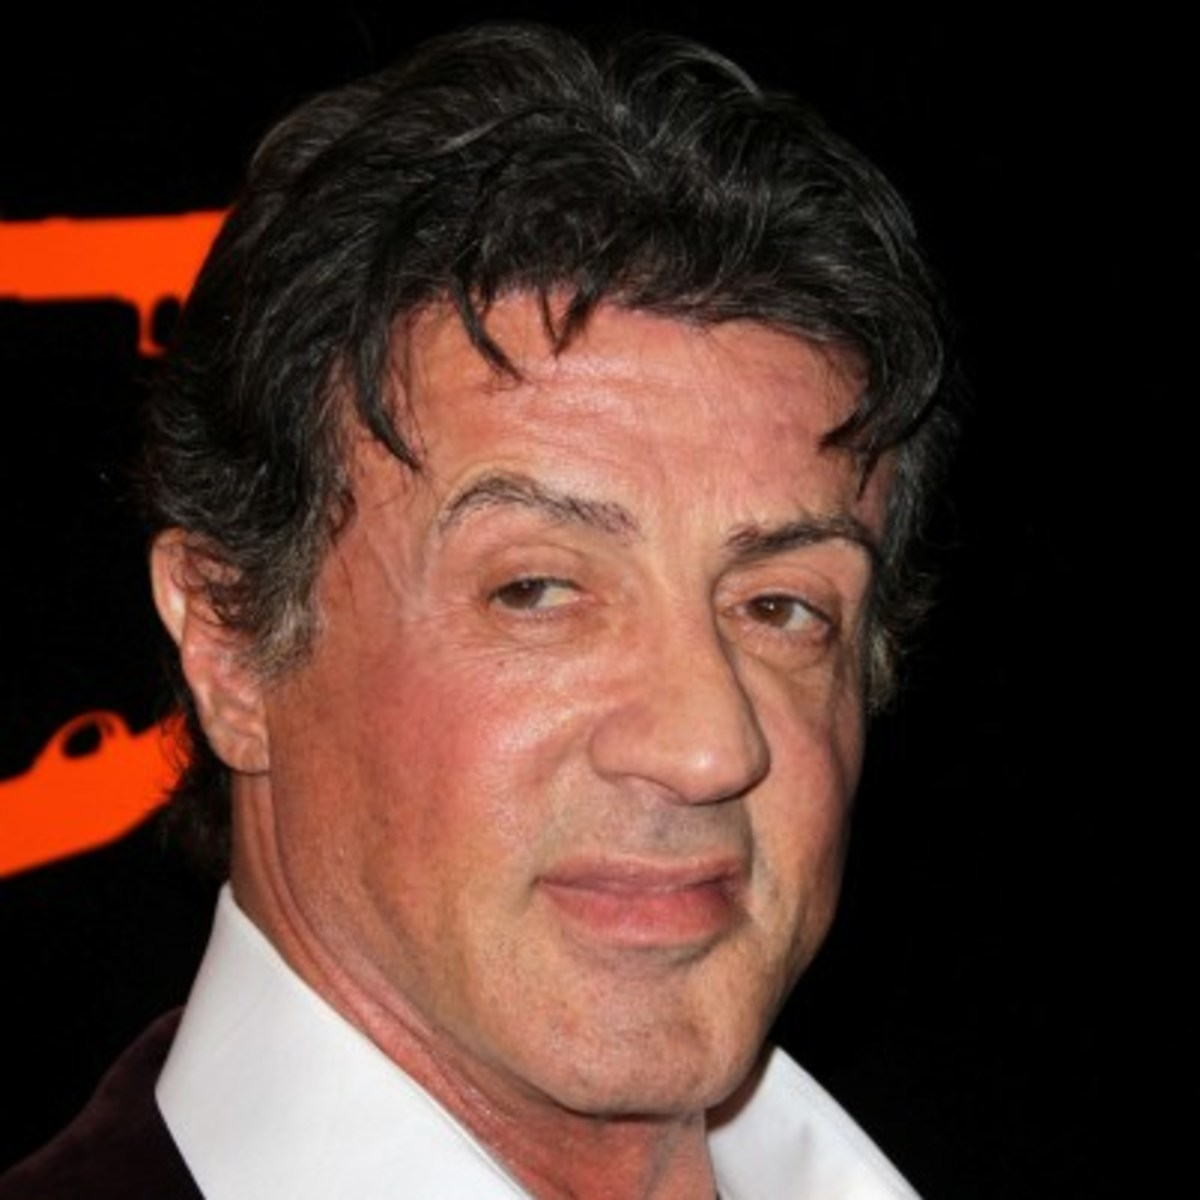 Sylvester Stallone Producer Director Screenwriter Actor Film Actor Biography